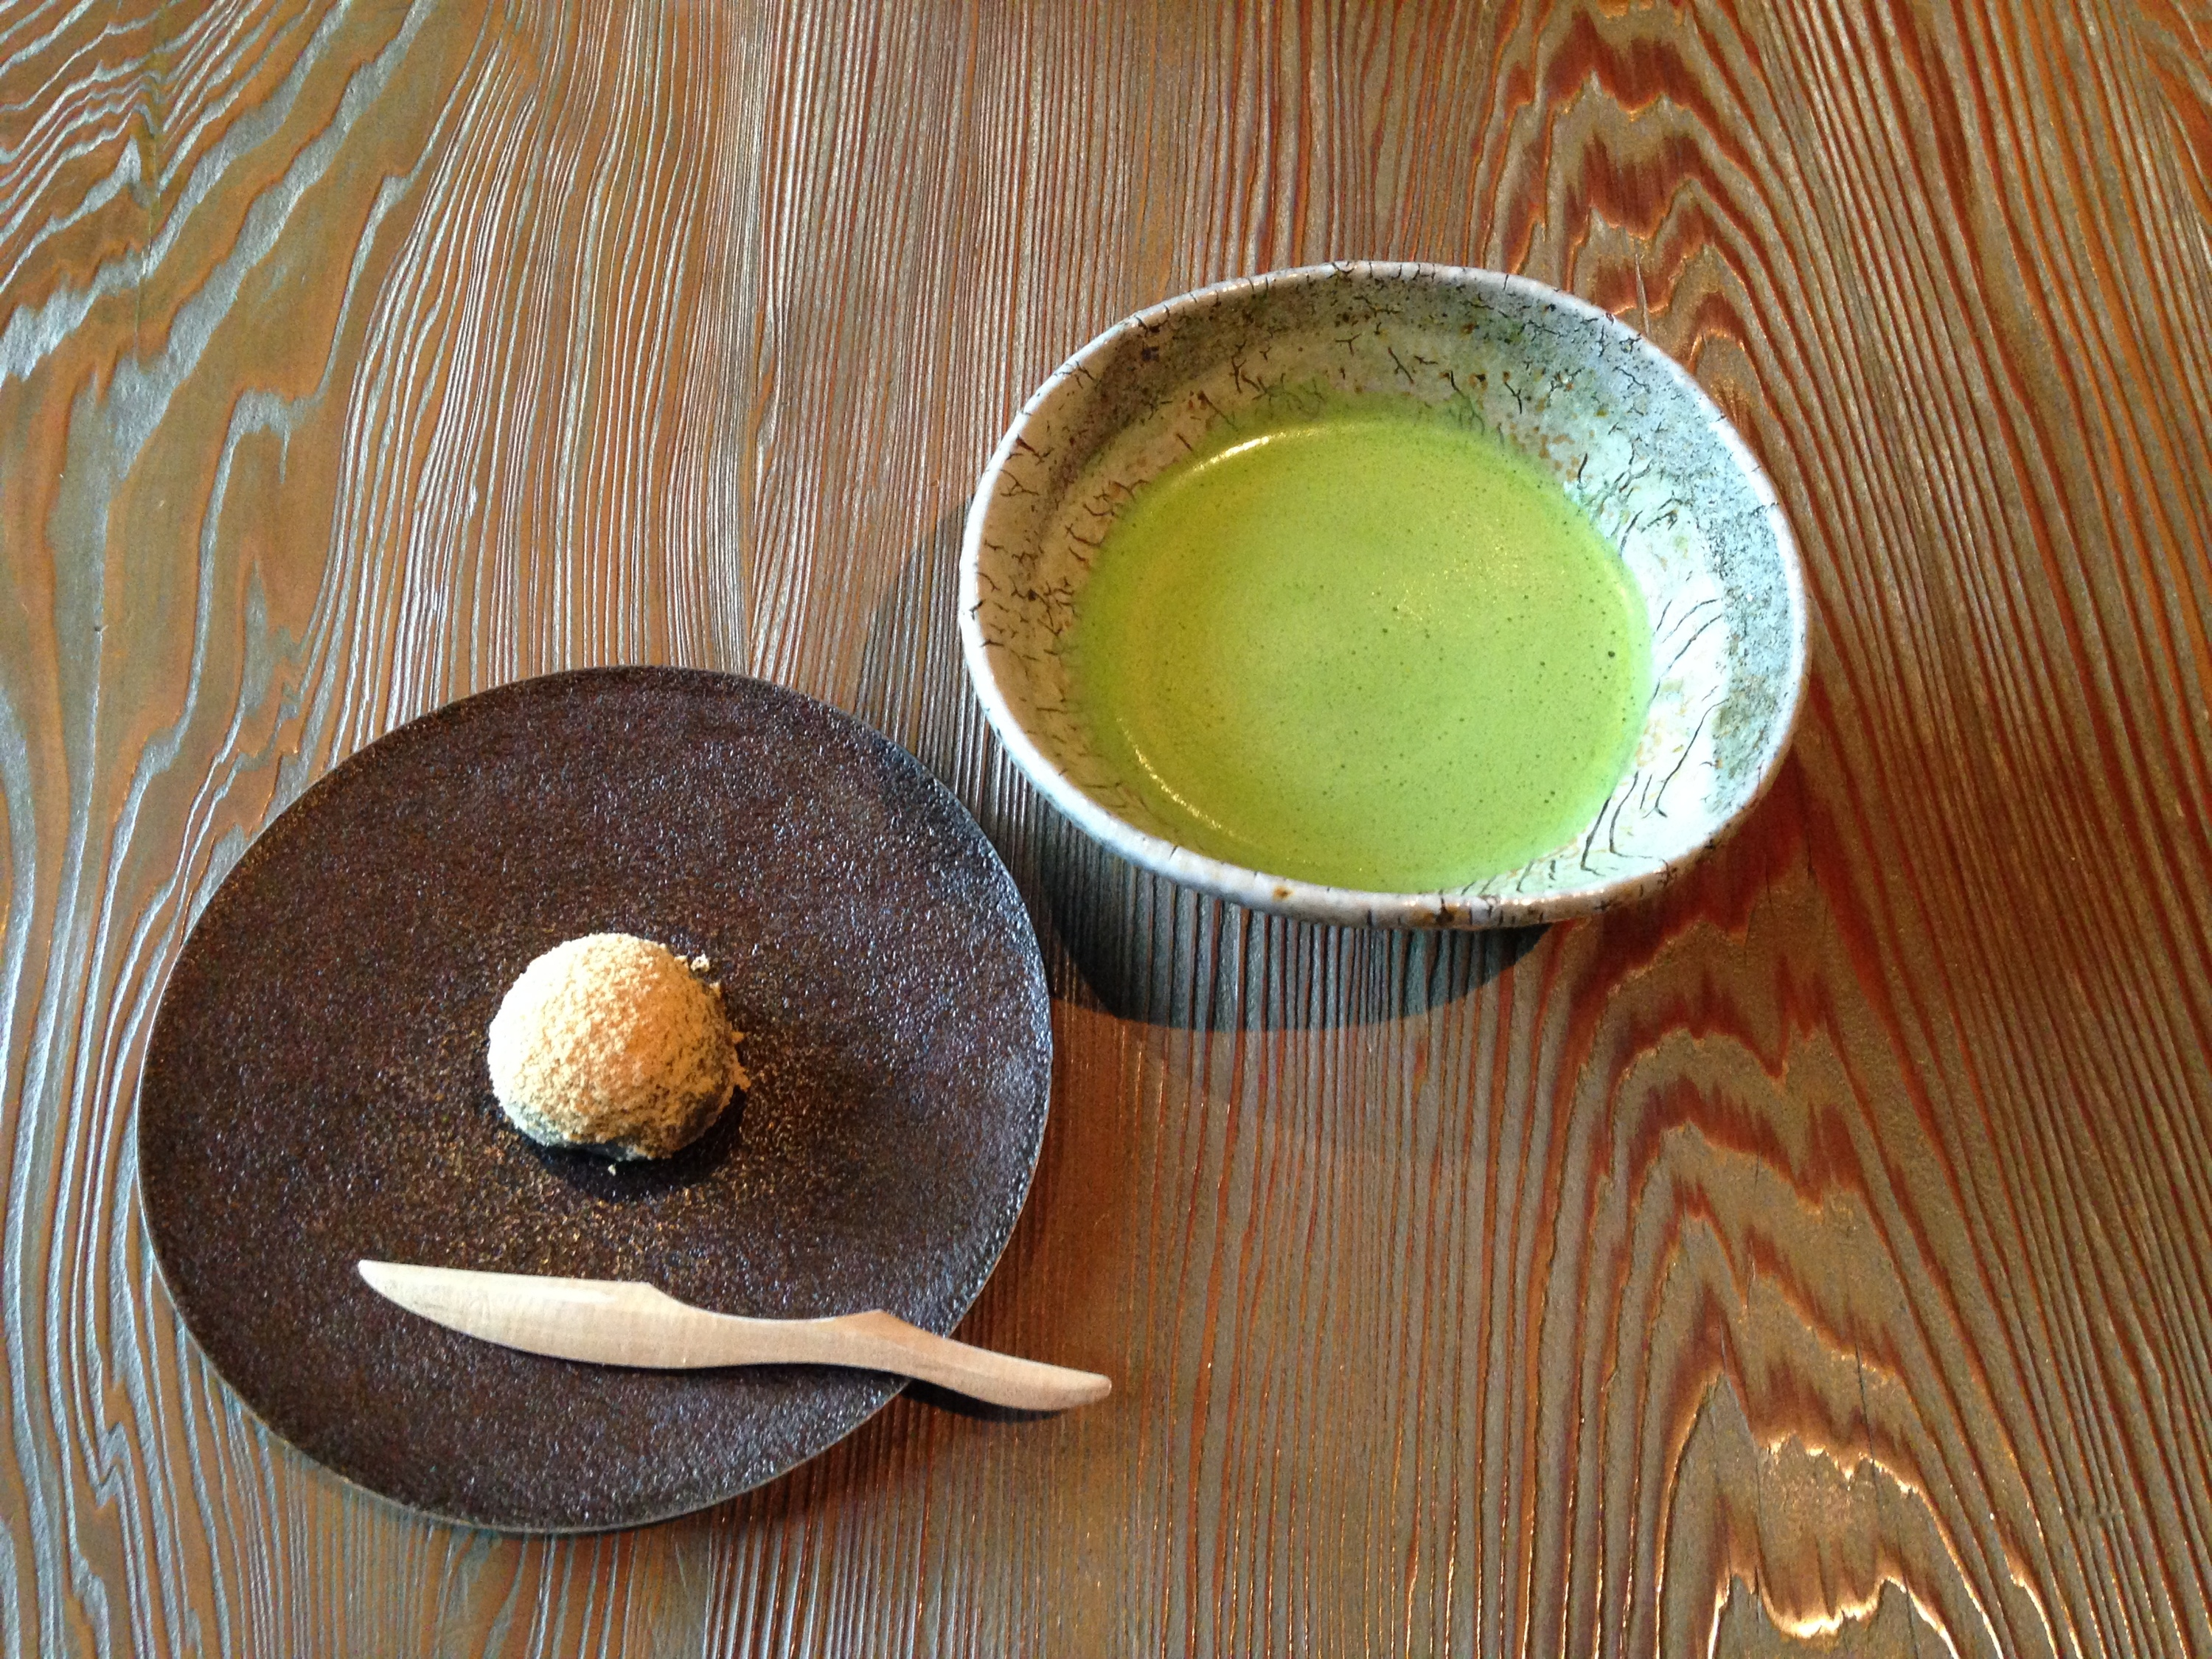 Top teahouses in Tokyo